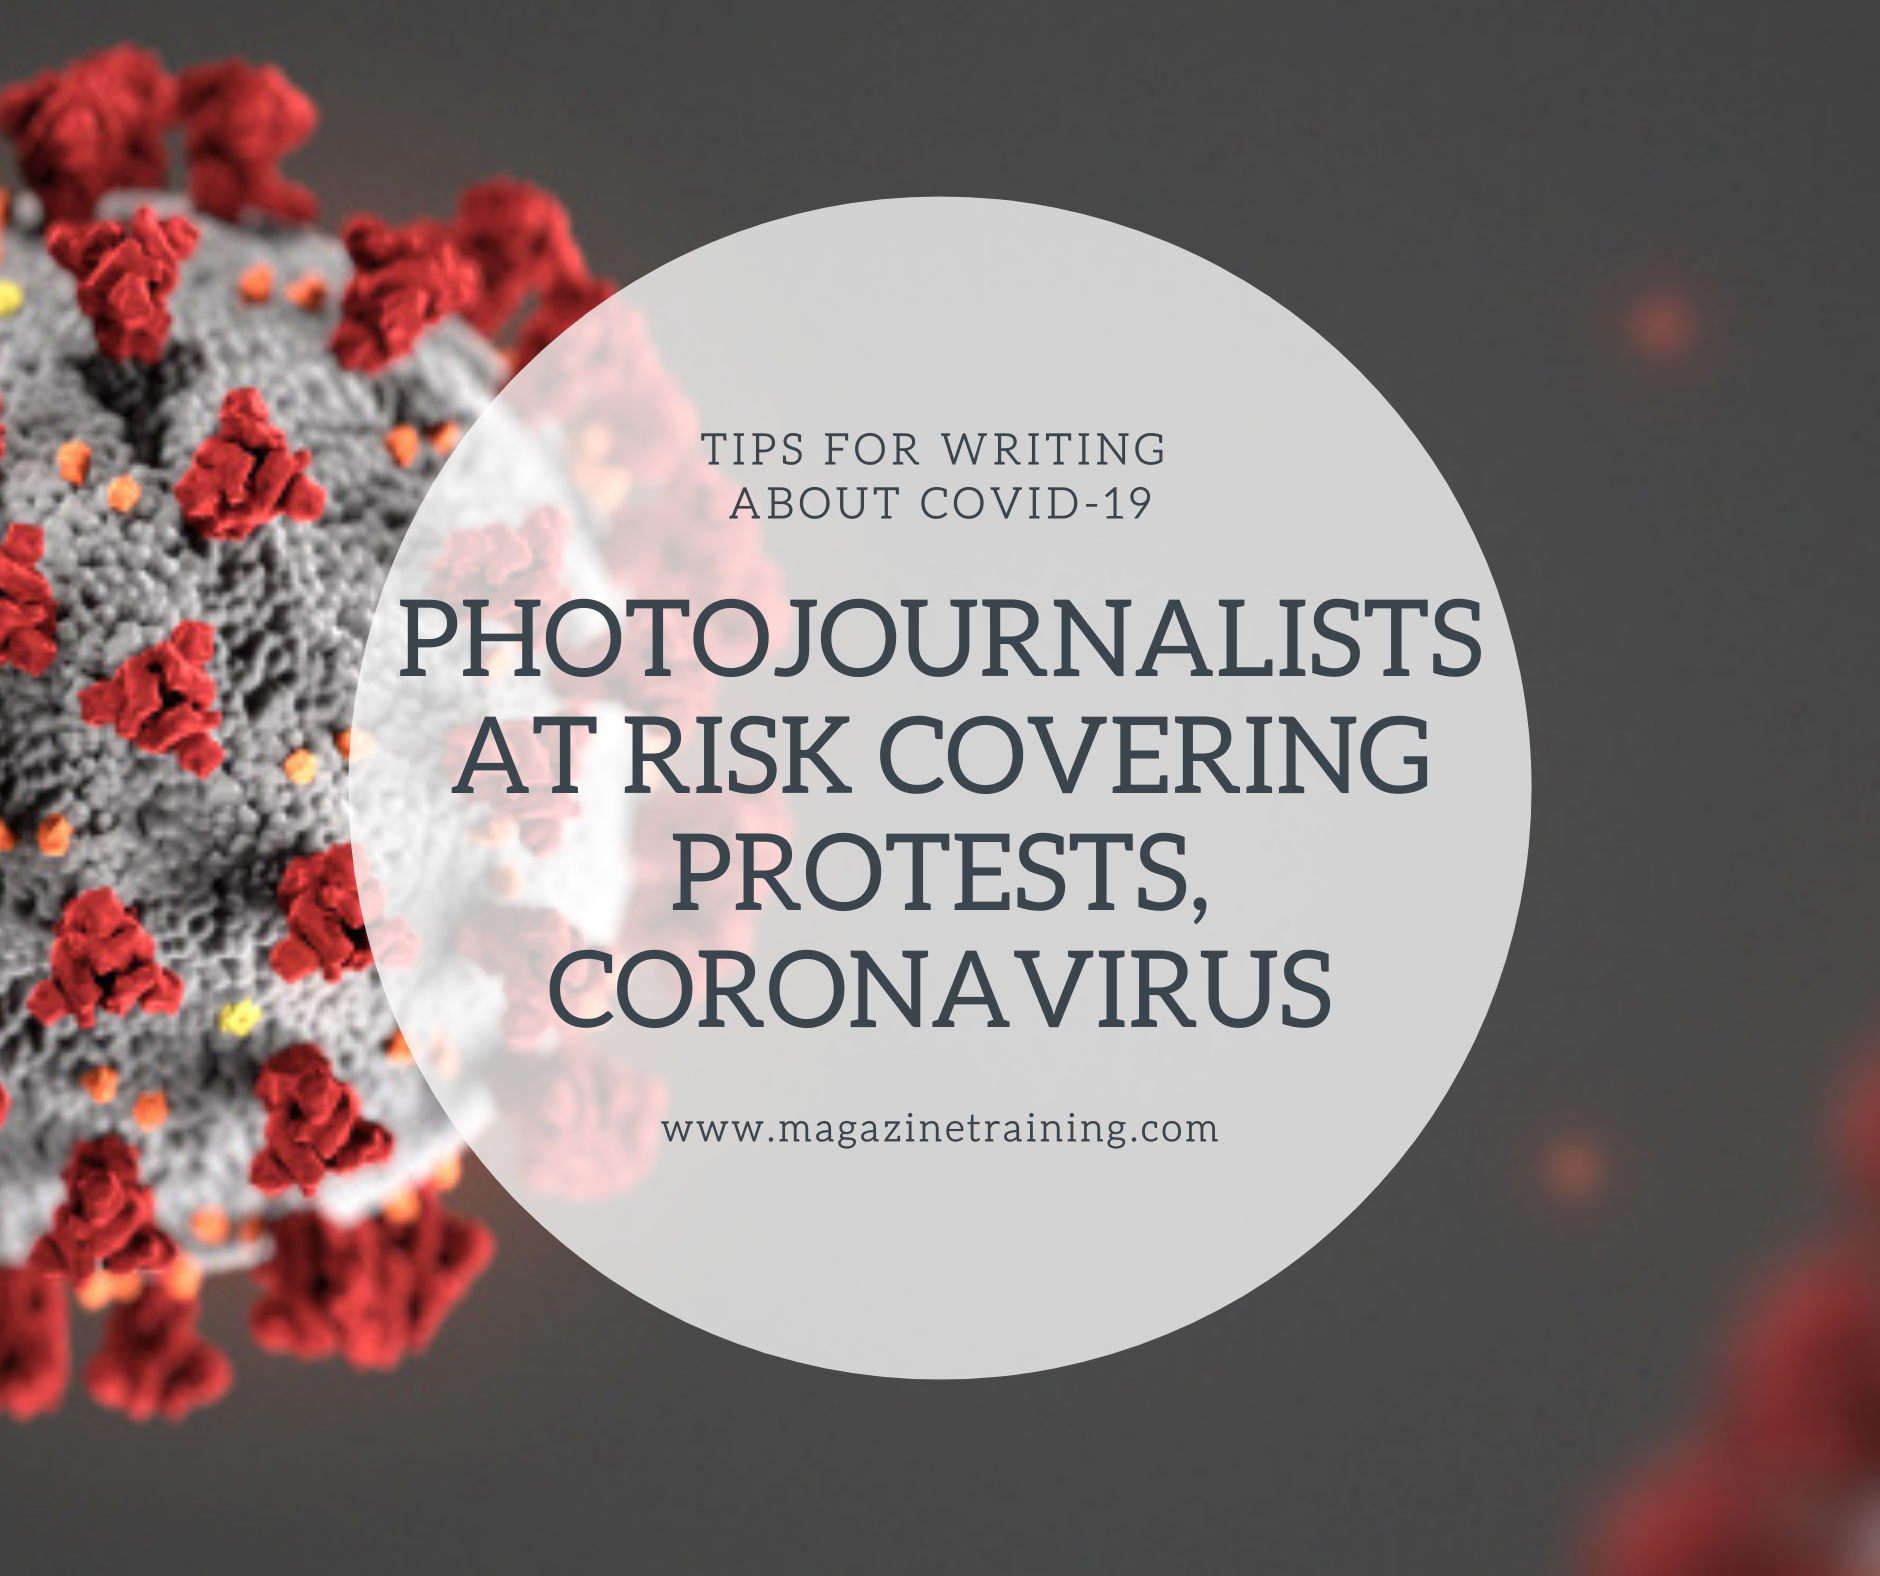 photojournalists at risk